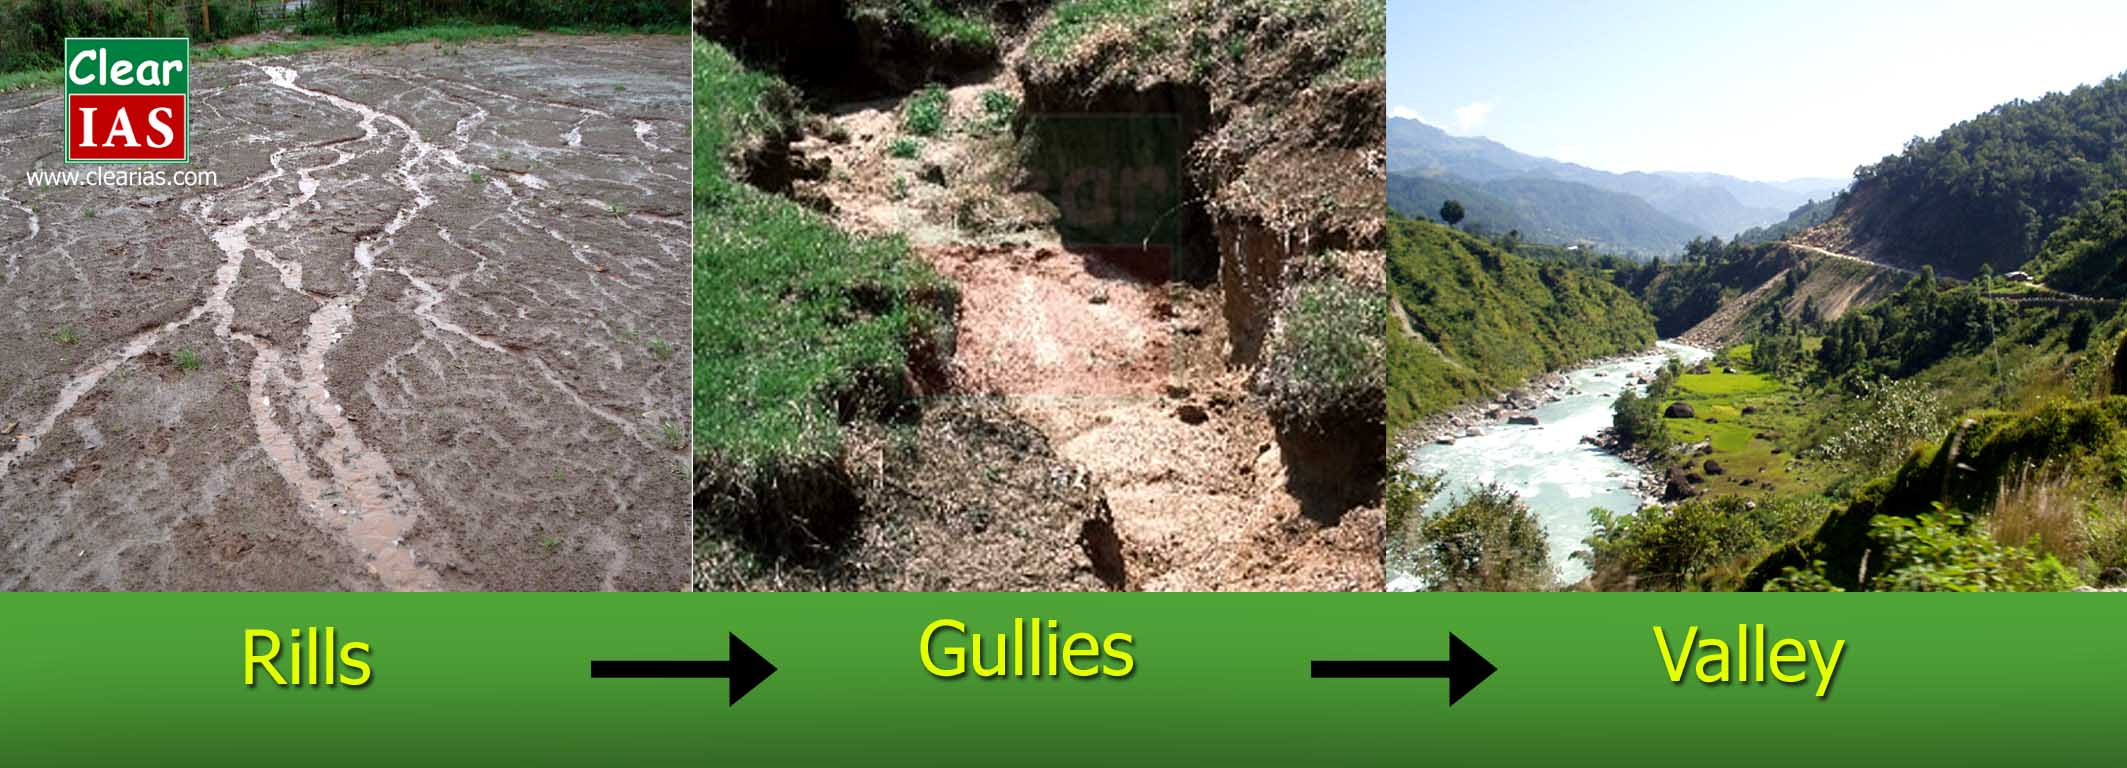 Rills, Gullies, Valleys